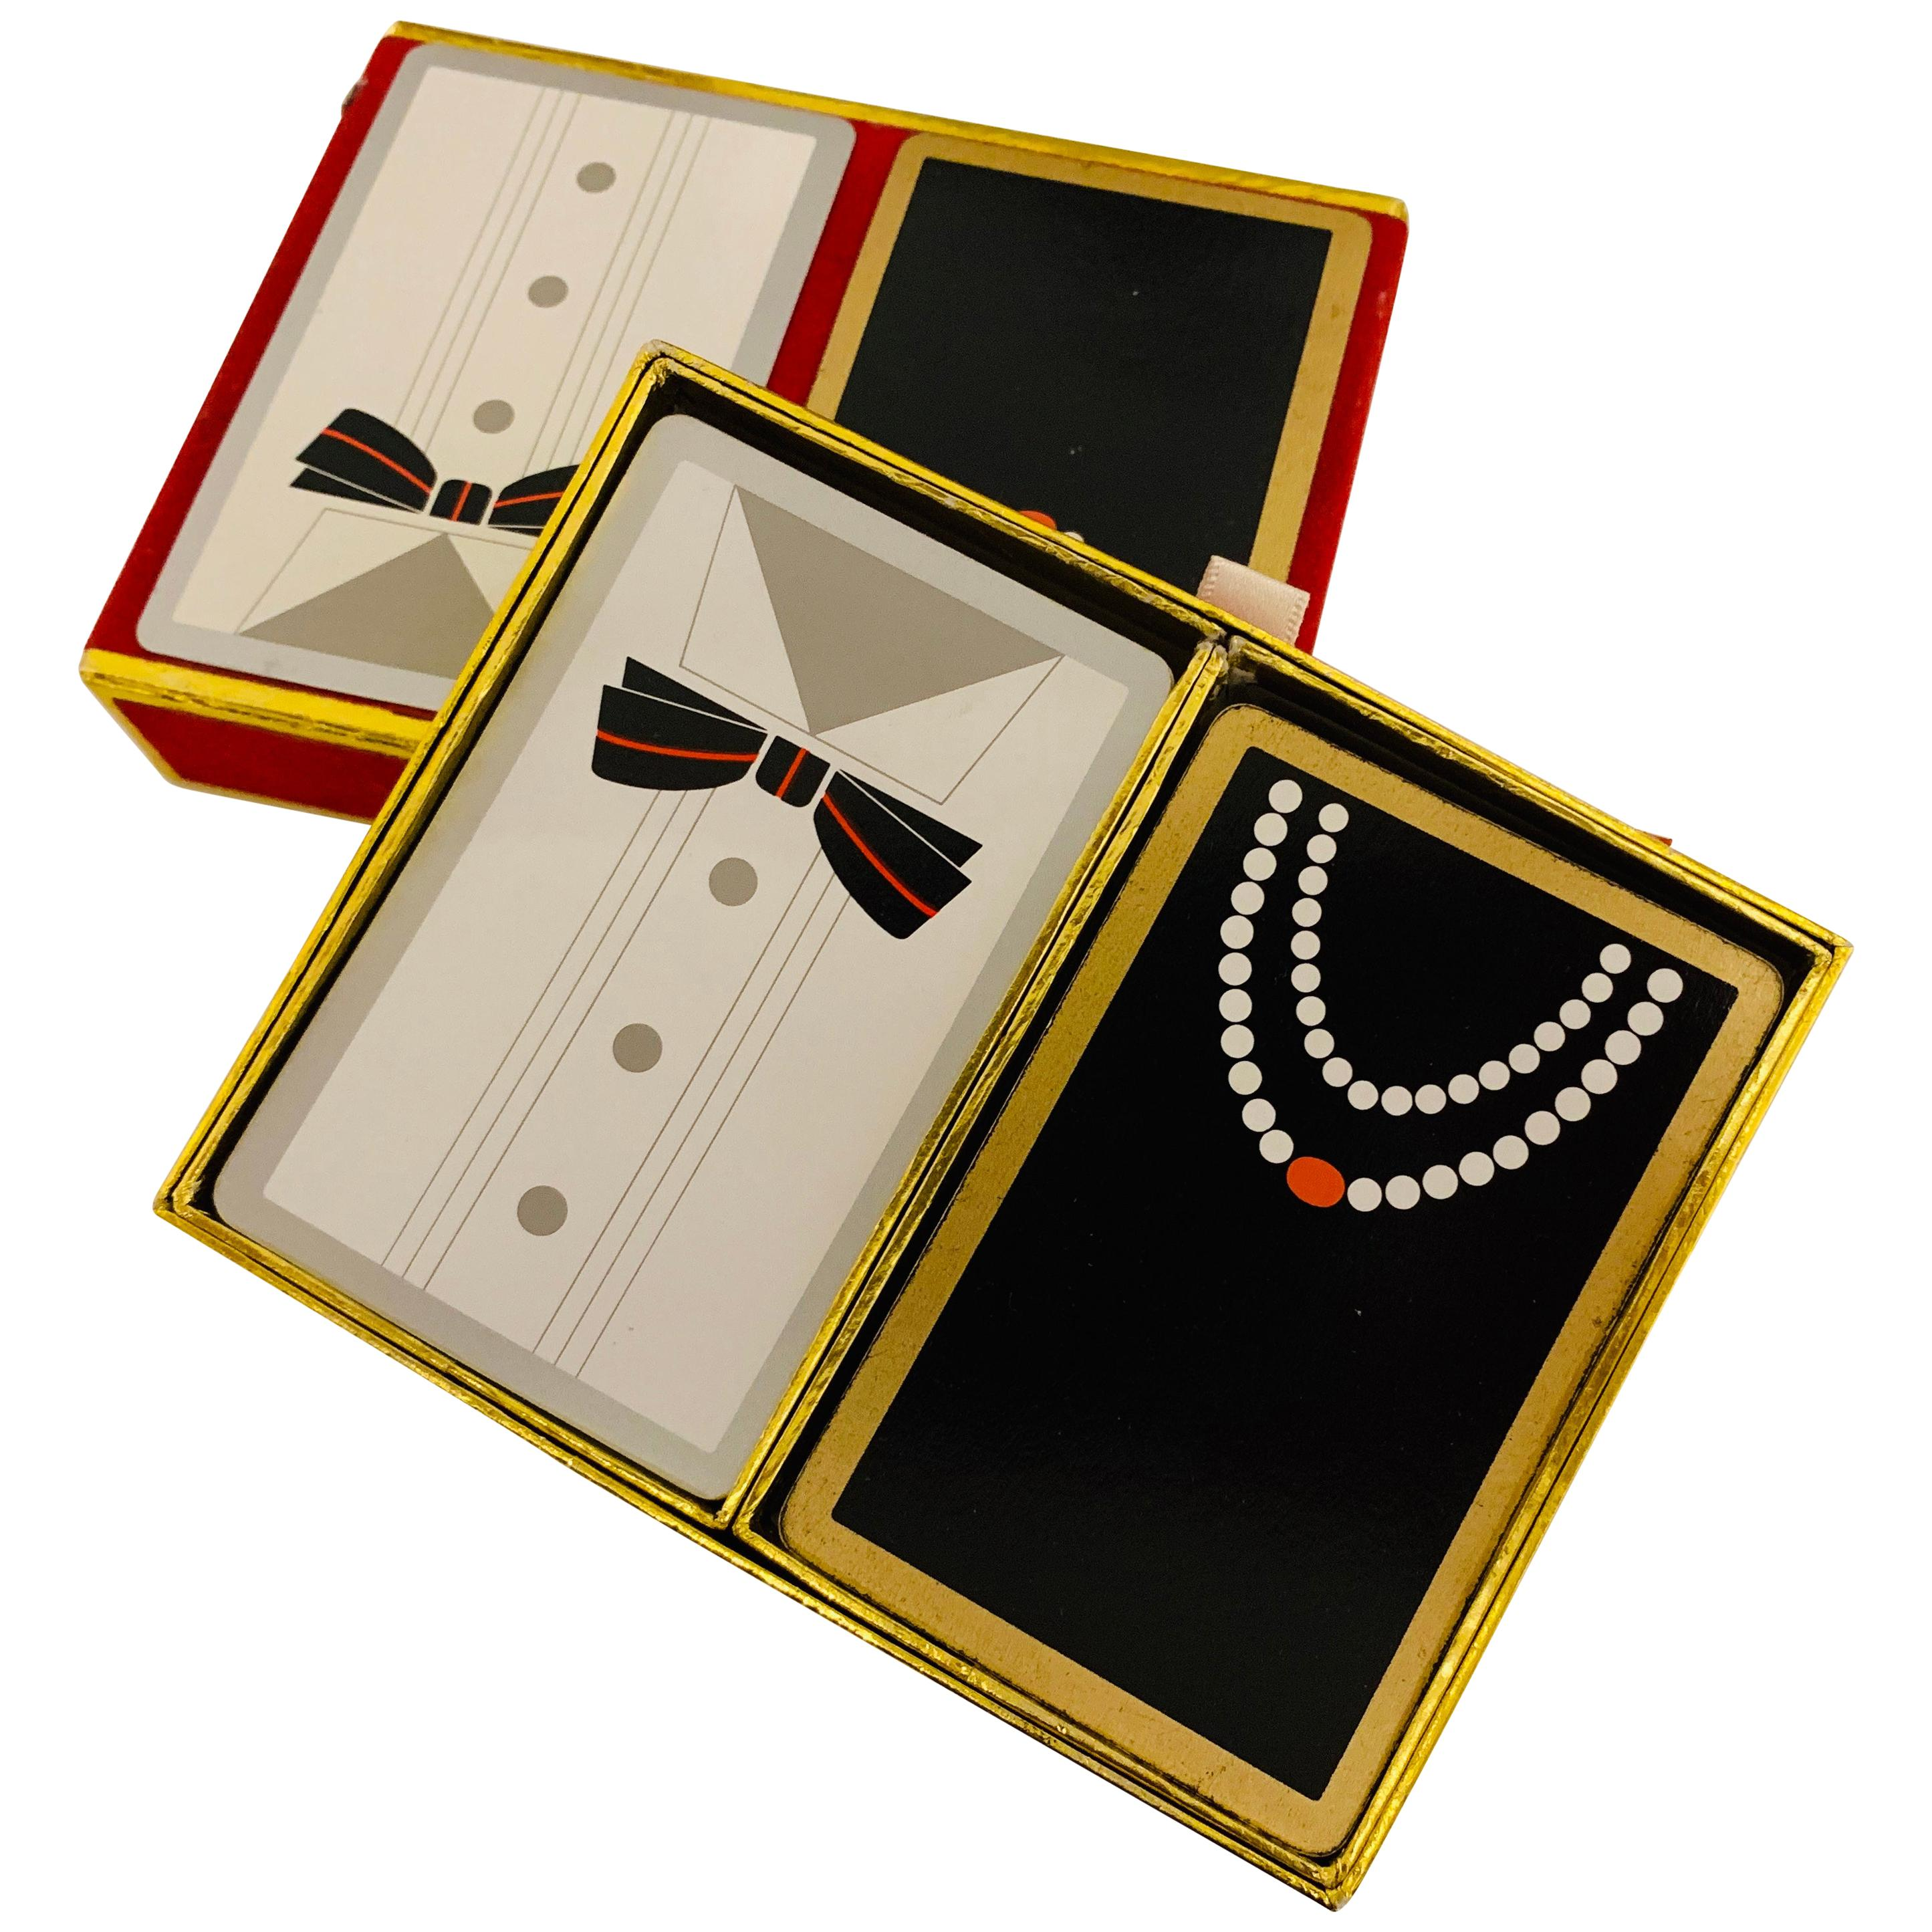 Mr. and Mrs. Black Tie Playing Cards